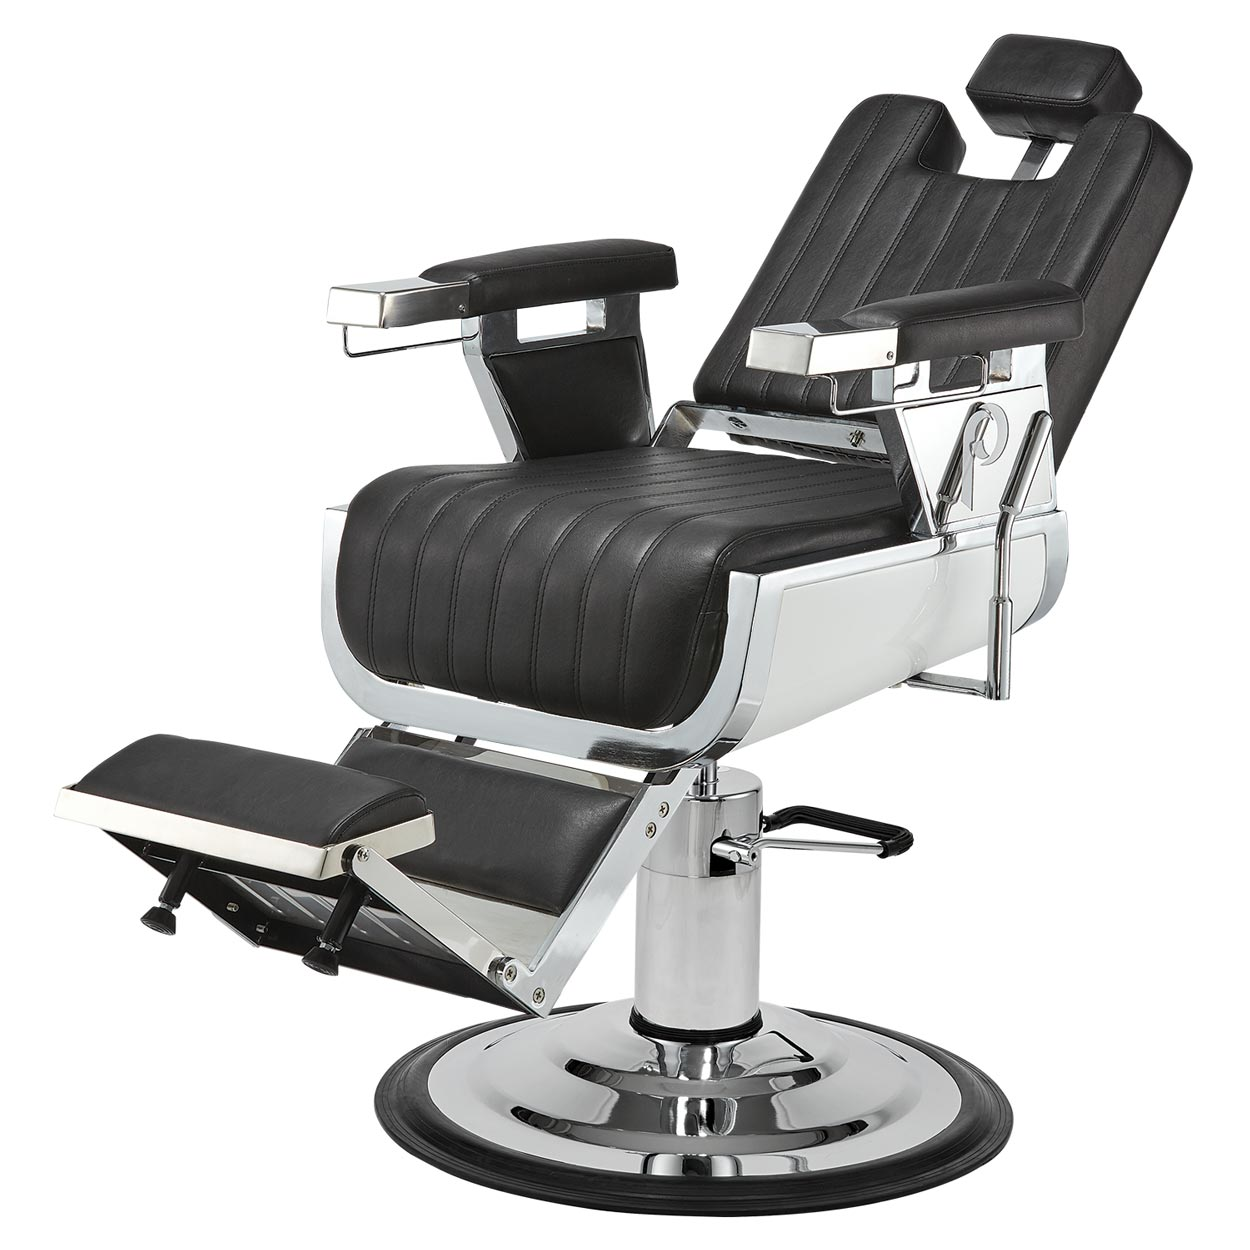 Pibbs 661 Seville Barber Shop Chair  main product image